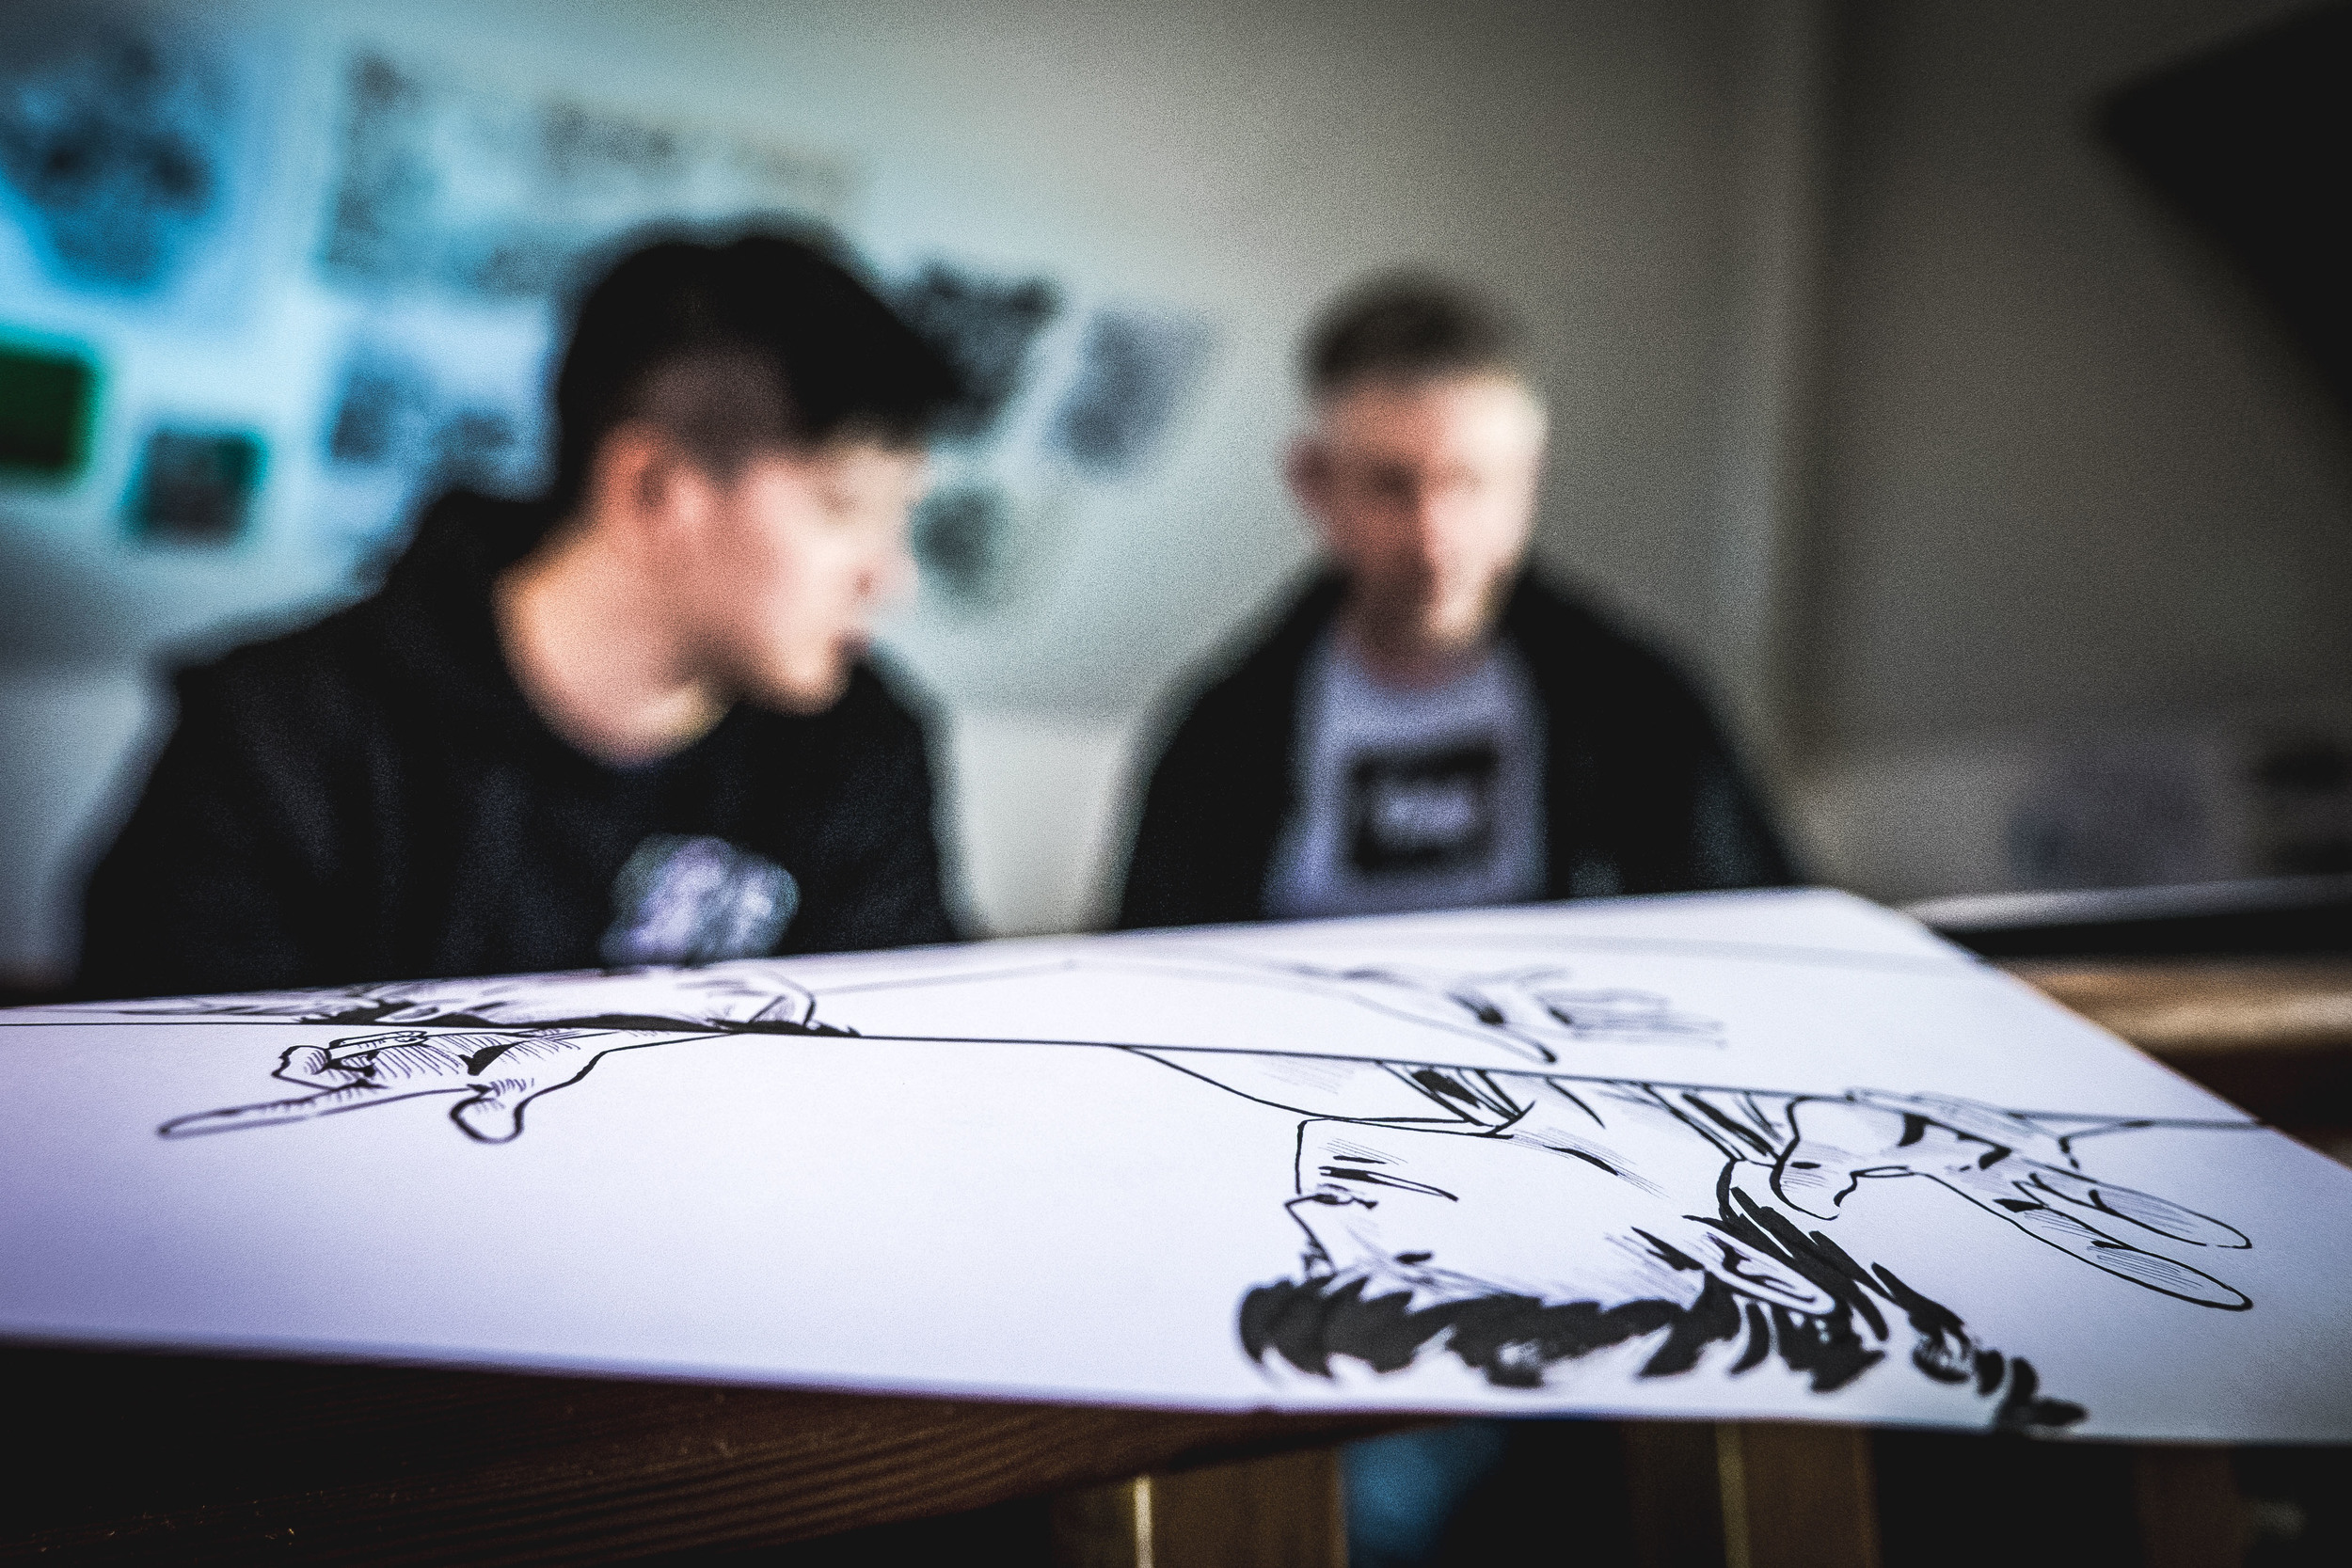 Collaborating with talented local artist, Dom Tsoi, to visualise a story which has been in the making for many years...